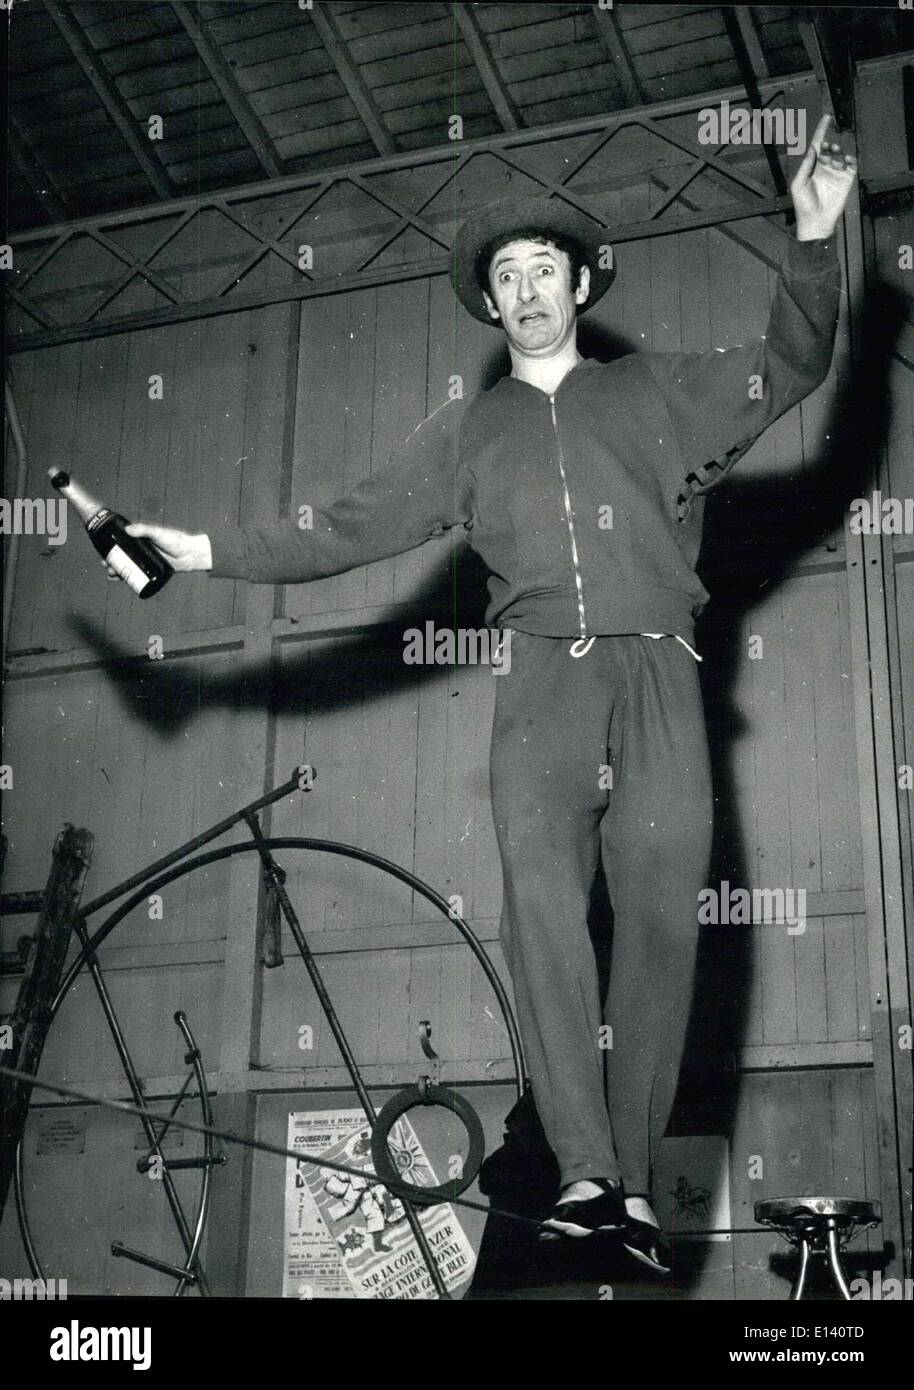 Mar. 31, 2012 - French Mime Marcel Marceau as a Rope Dancer - The Famous French Dancer, Actor and Acrobat, Marcet, Marceau, will perform at the annual Gala de L'Union i Paris Very Soon. OPS M. Marceau Showing His Extraordinary Agility as a Tight Walker. - Stock Image